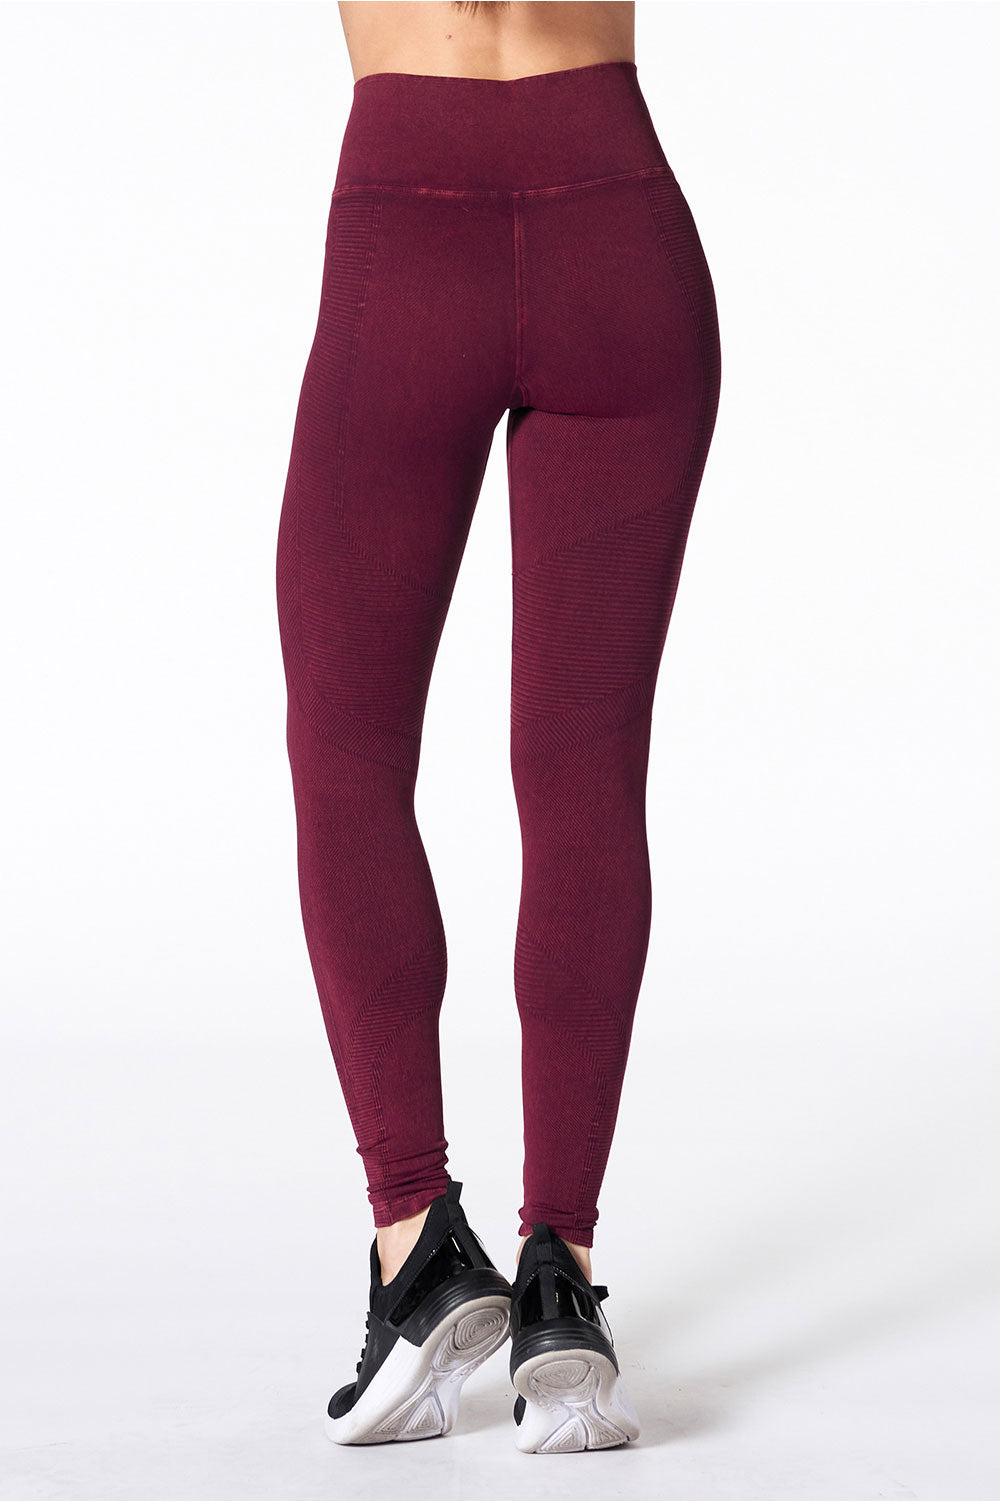 One by One Legging - Violet Wine